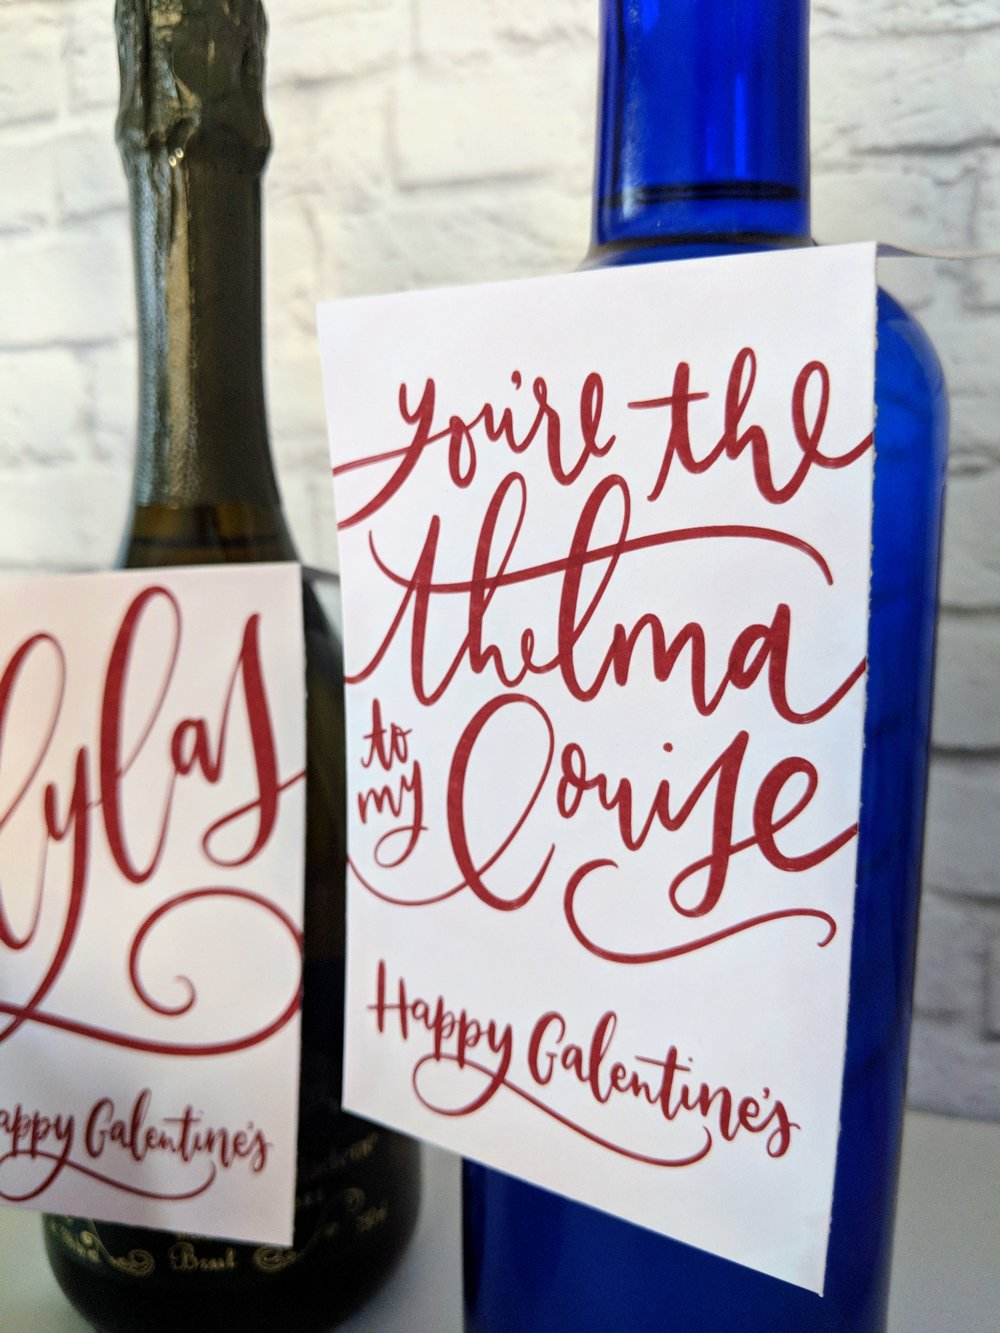 Galentine's Wine Bottle Tags by Manayunk Calligraphy - Thelma & Louise